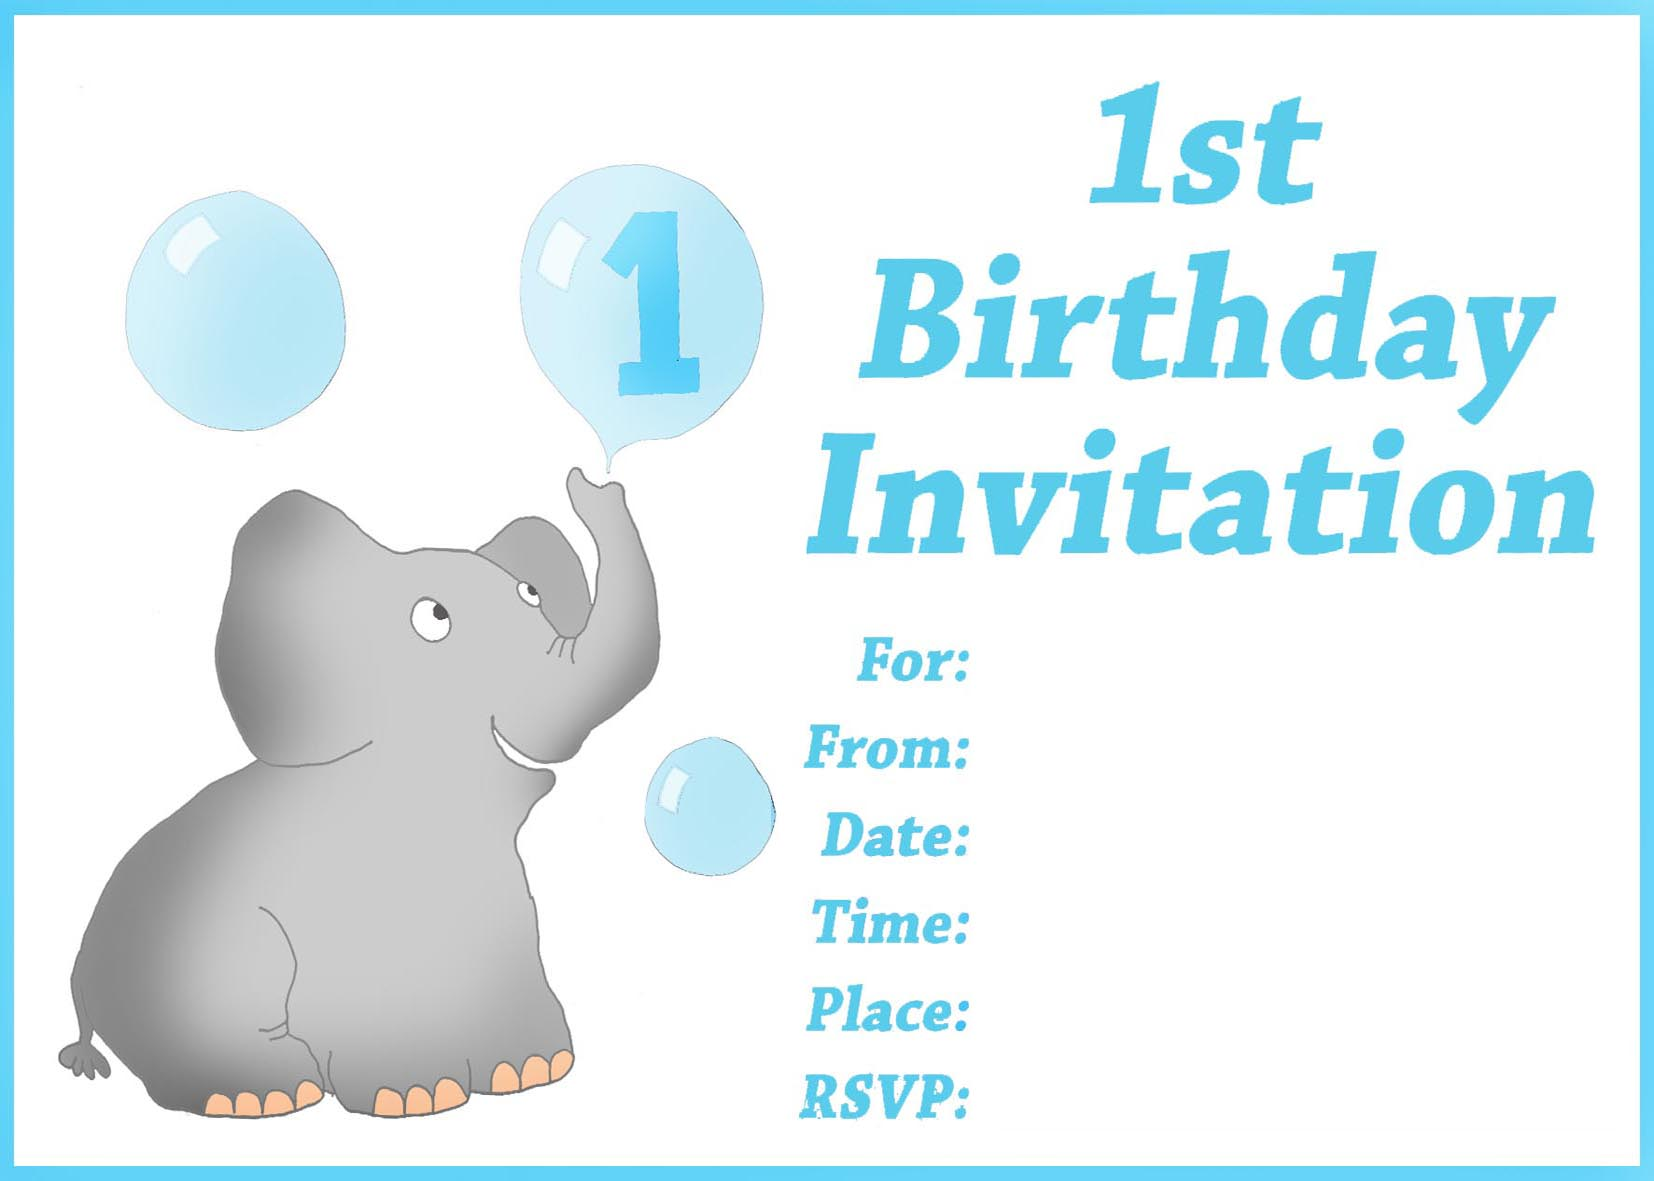 1 year old birthday card printable ; free-birthday-invitation-for-1-year-old-boy-beautiful-find-your-printable-1st-birthday-invitation-here-of-free-birthday-invitation-for-1-year-old-boy